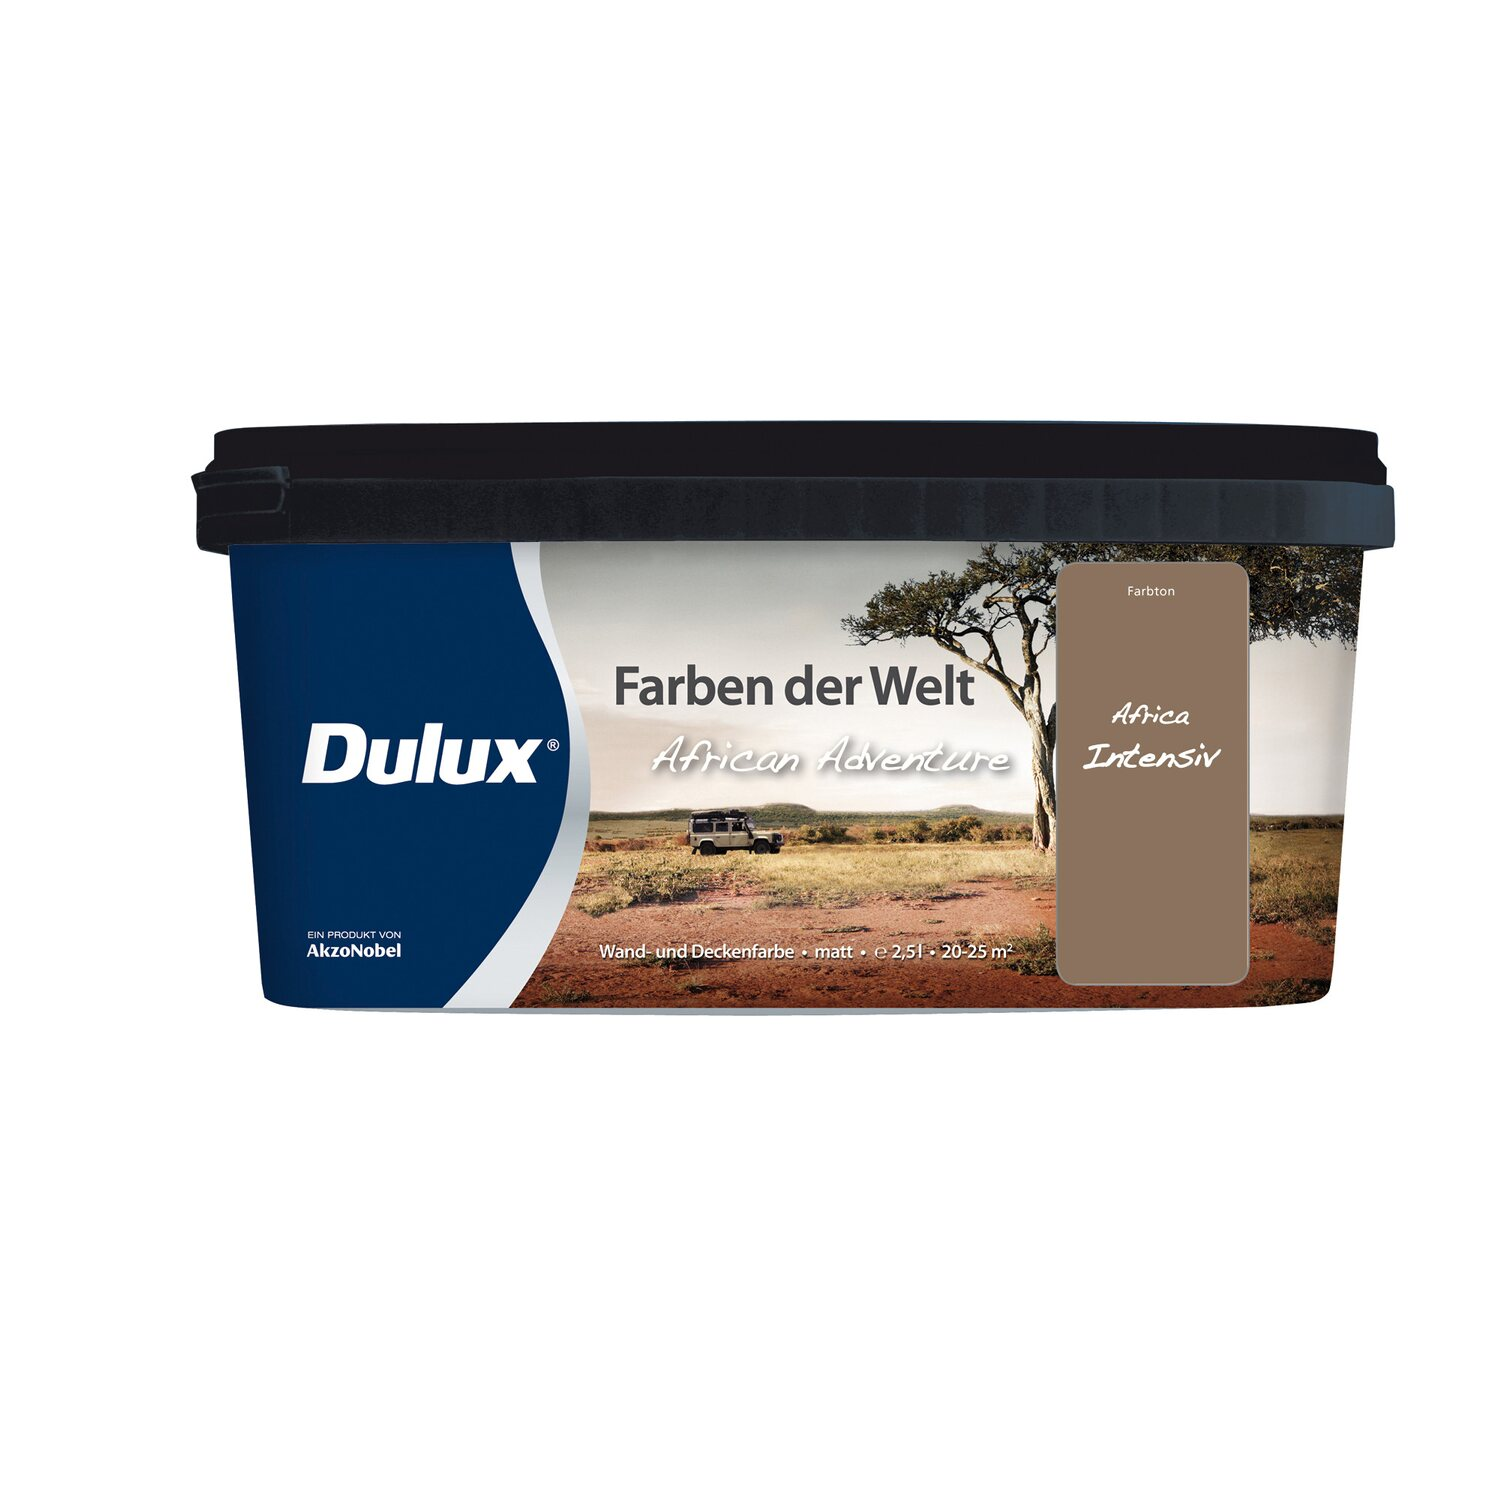 dulux wand und deckenfarbe farben der welt africa. Black Bedroom Furniture Sets. Home Design Ideas